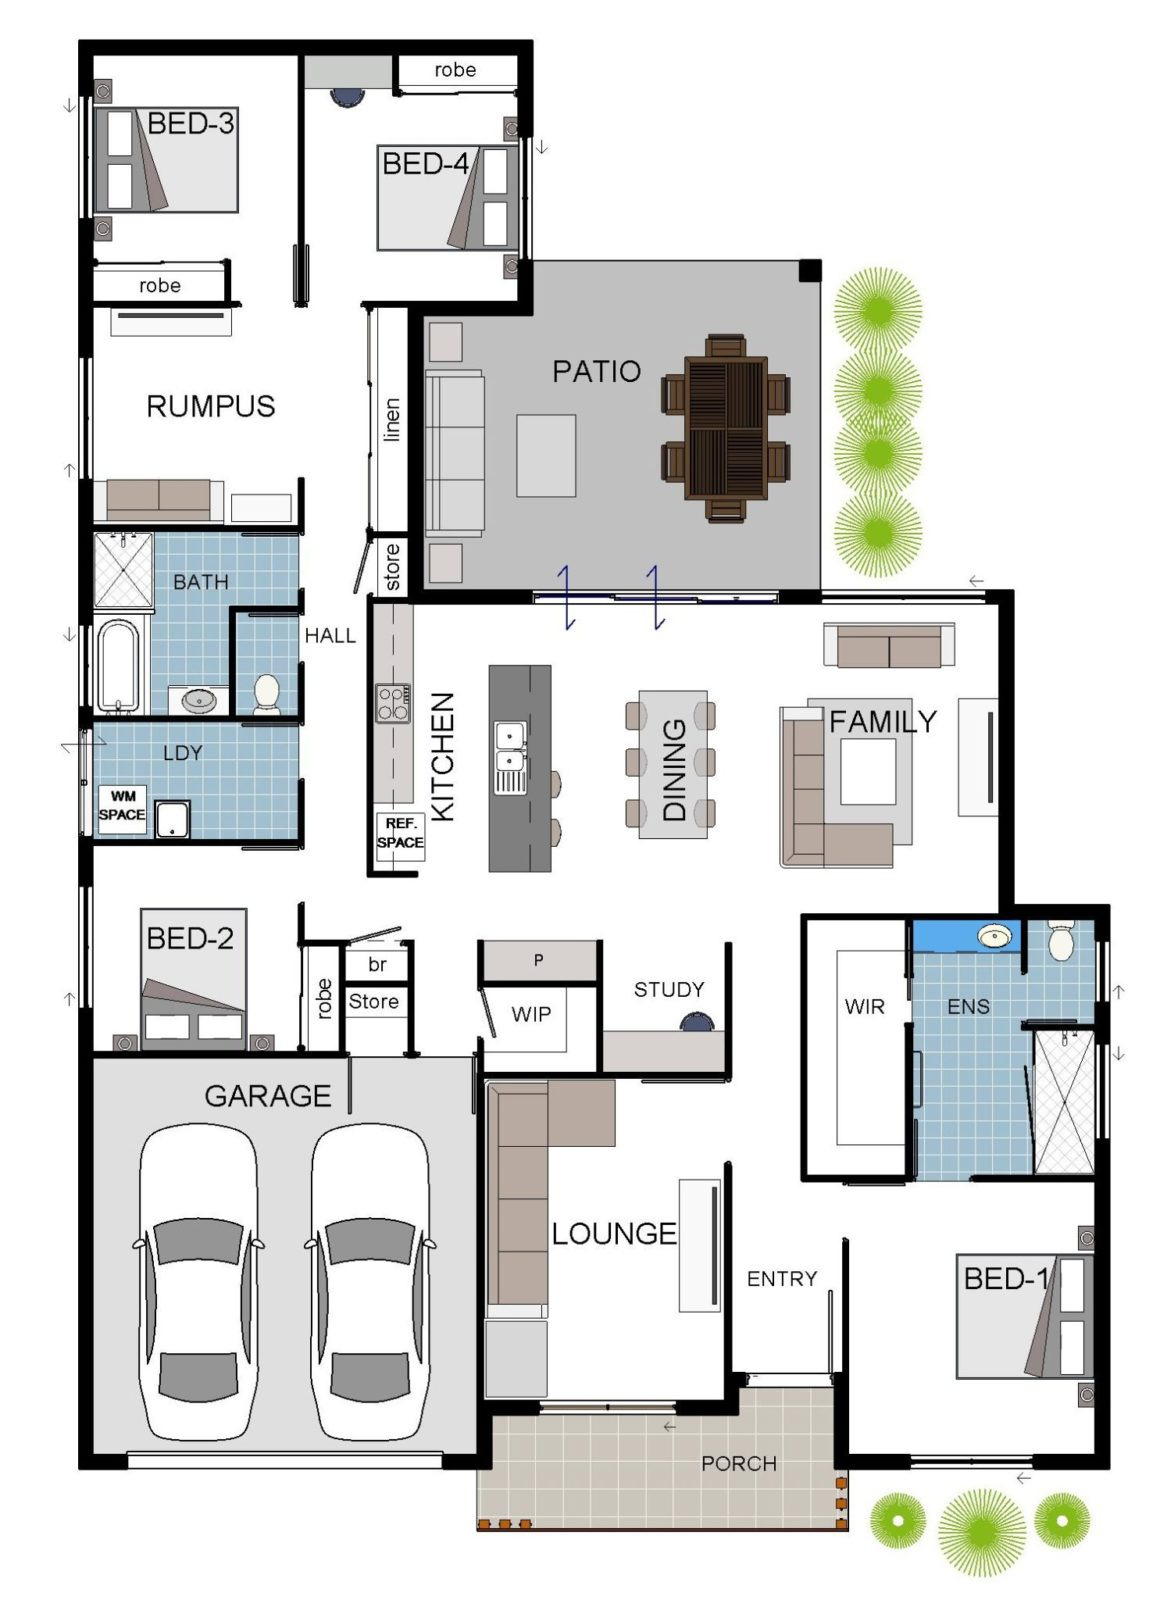 House Plans with Pics Fresh 12 Popular Floor Plans Of 2018 Grady Homes townsville